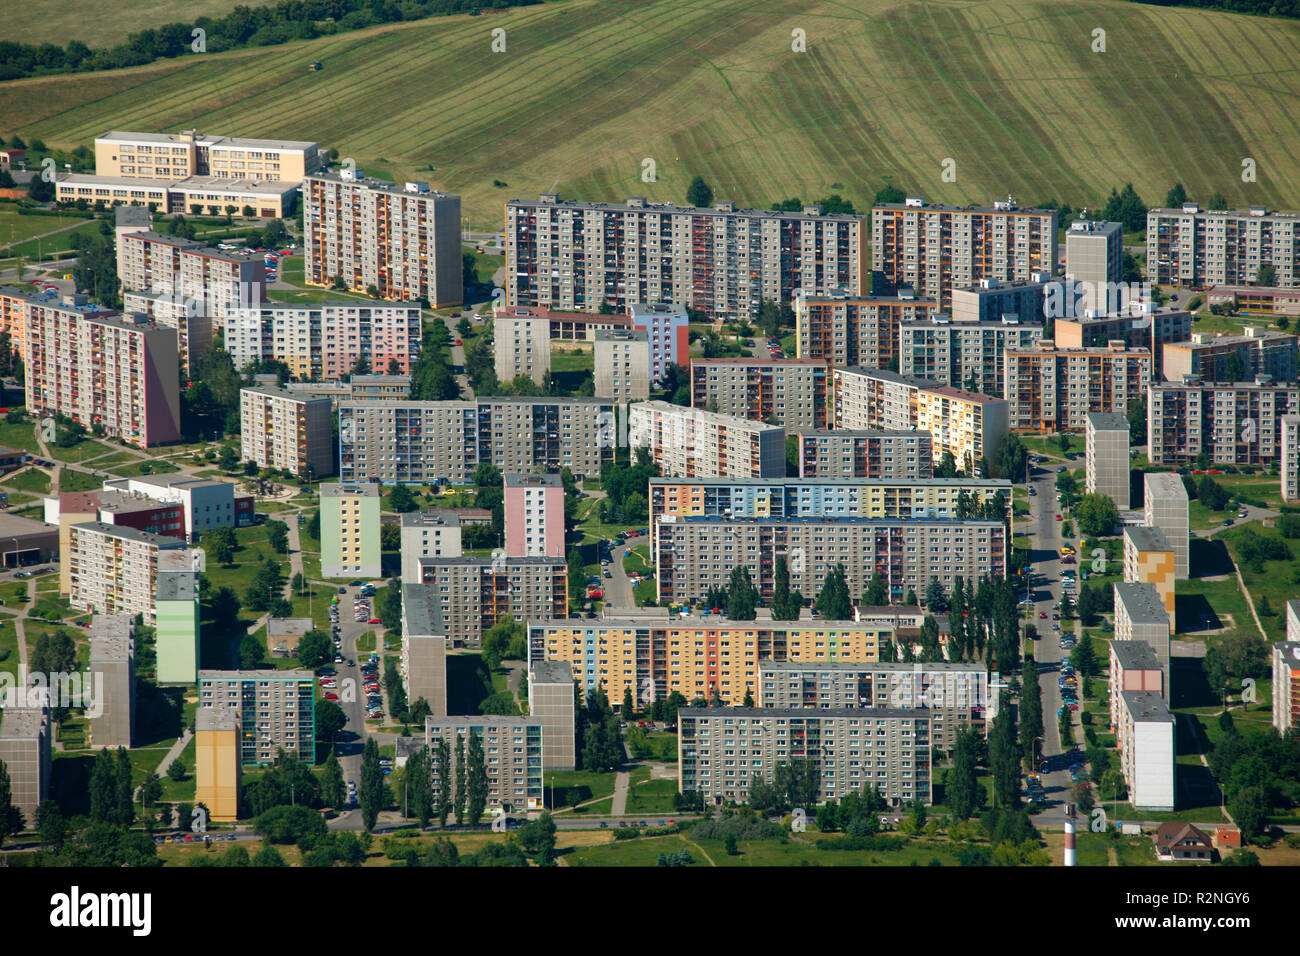 Aerial view, prefabricated housing, skyscrapers, Housing estate, Liberec, Ceská Lípa, Liberec, Czech Republic, Europe, Stock Photo